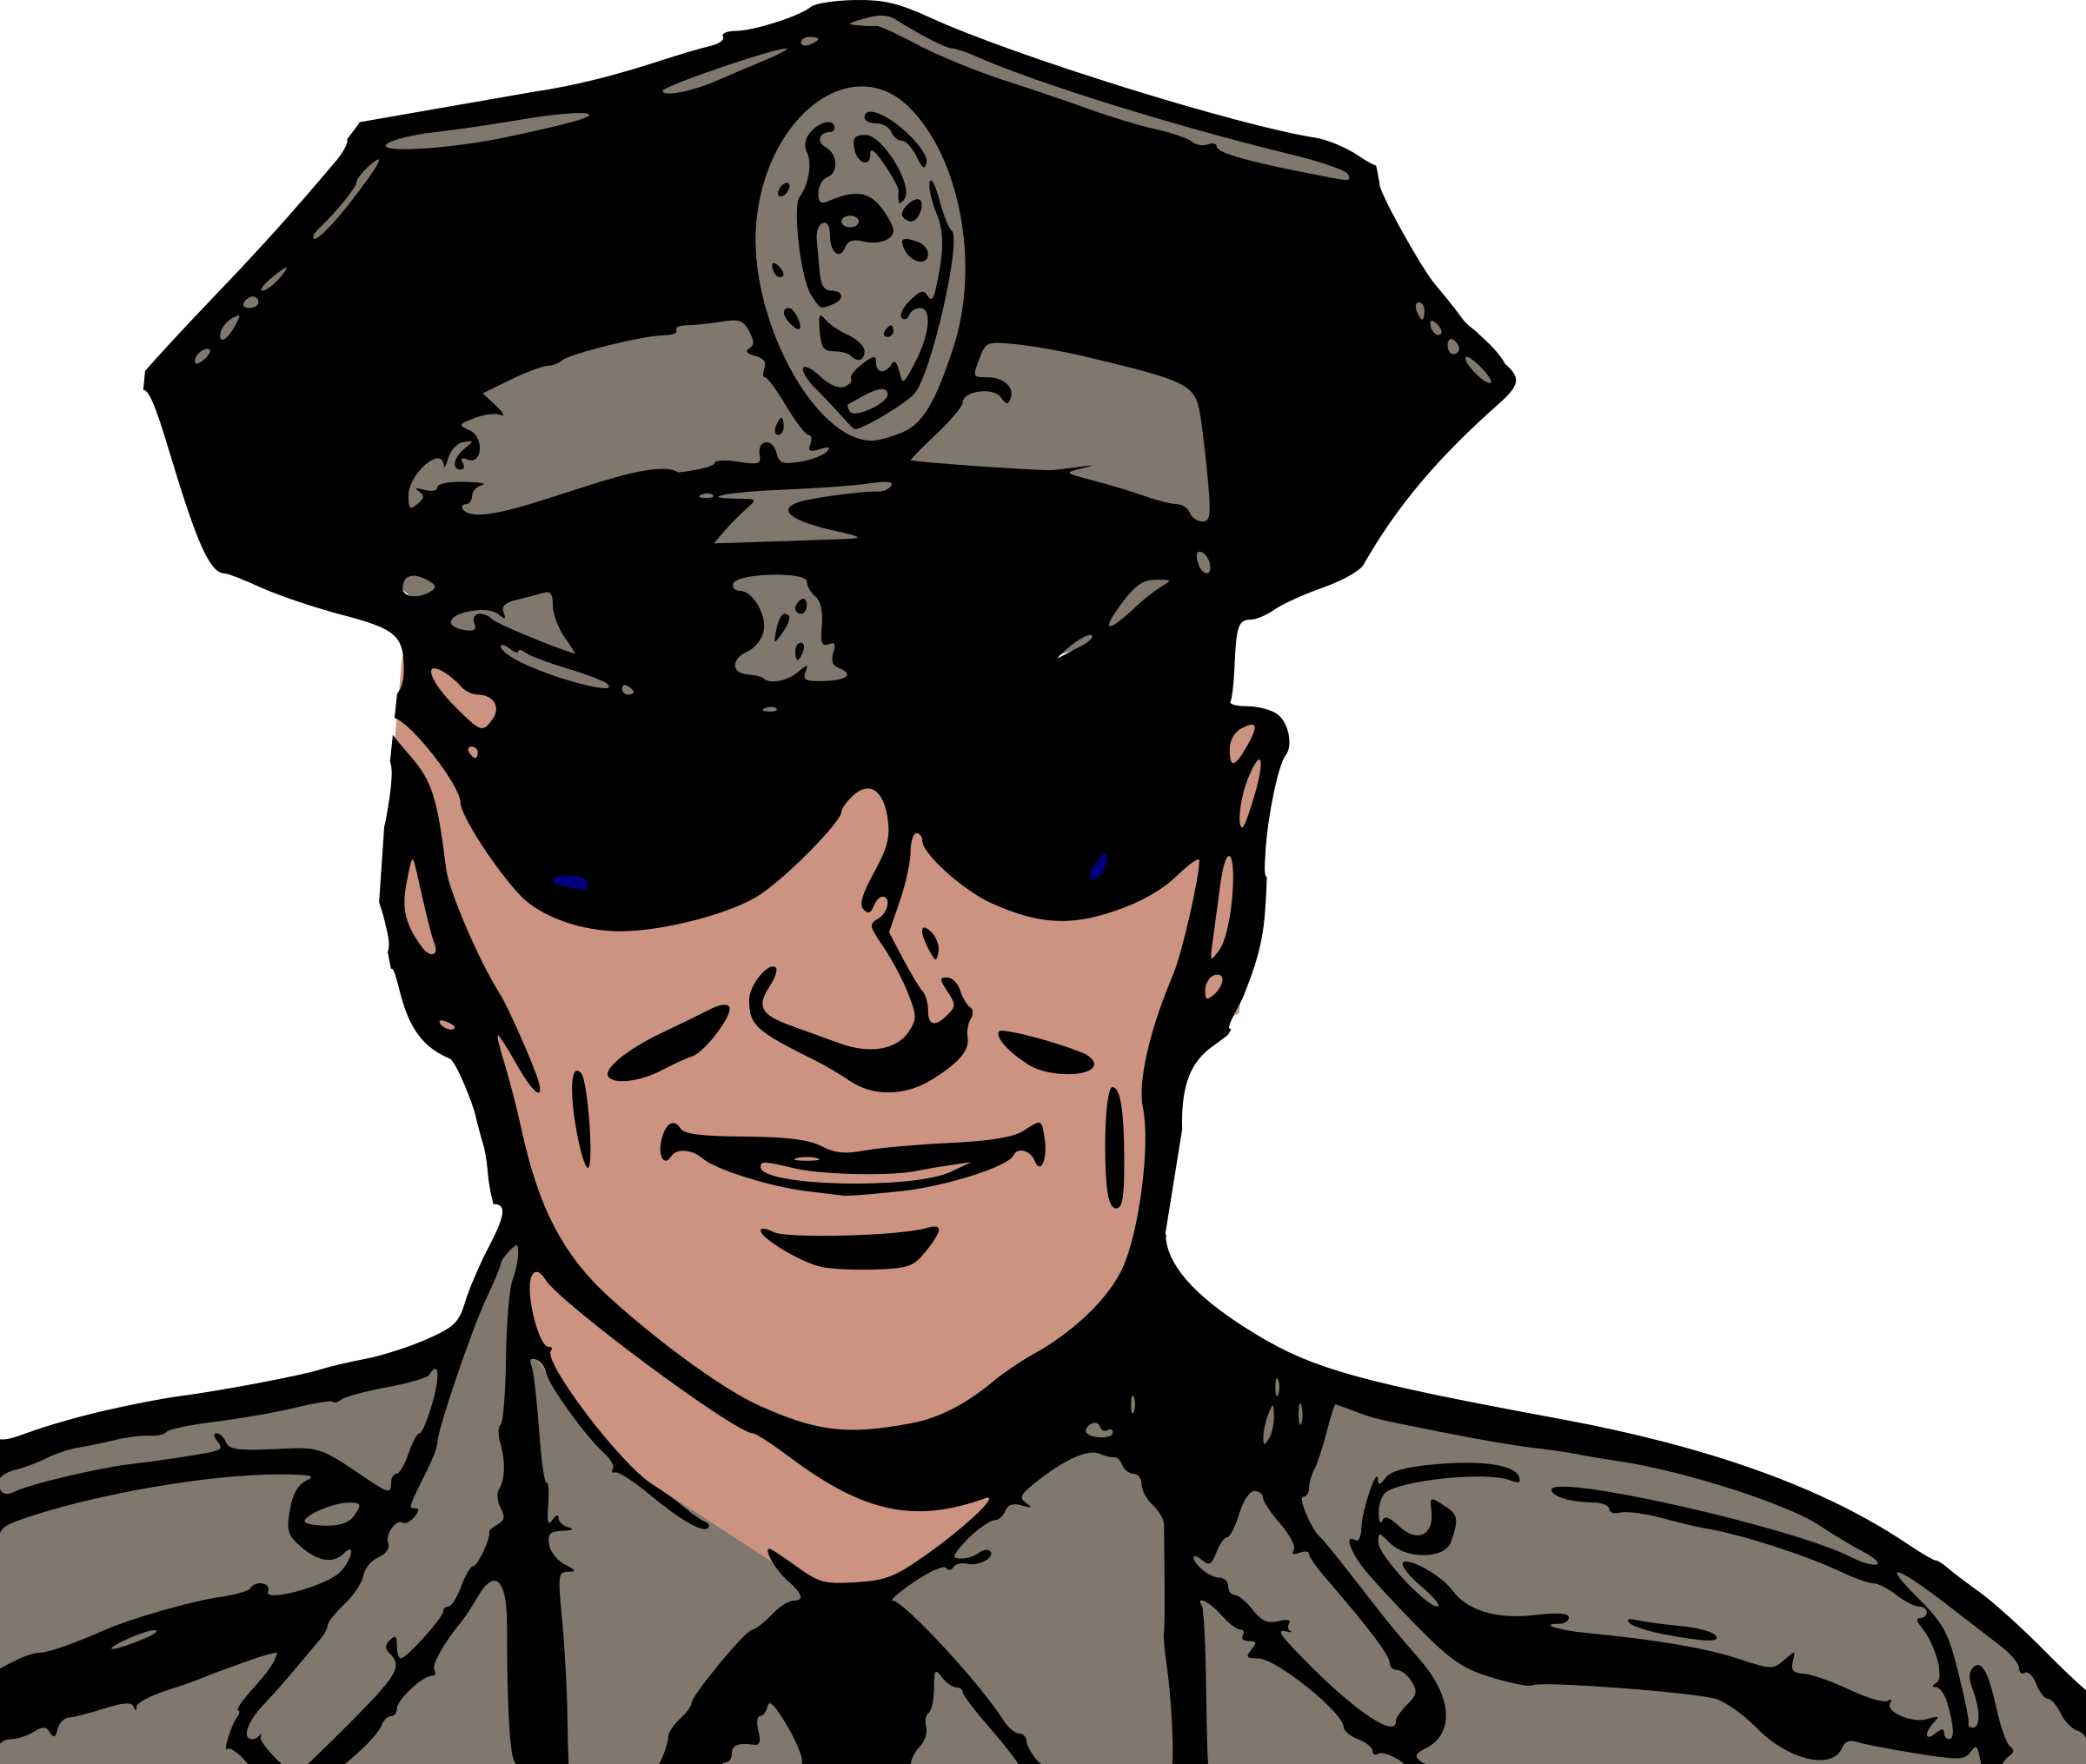 Police in sunglasses by liftarn